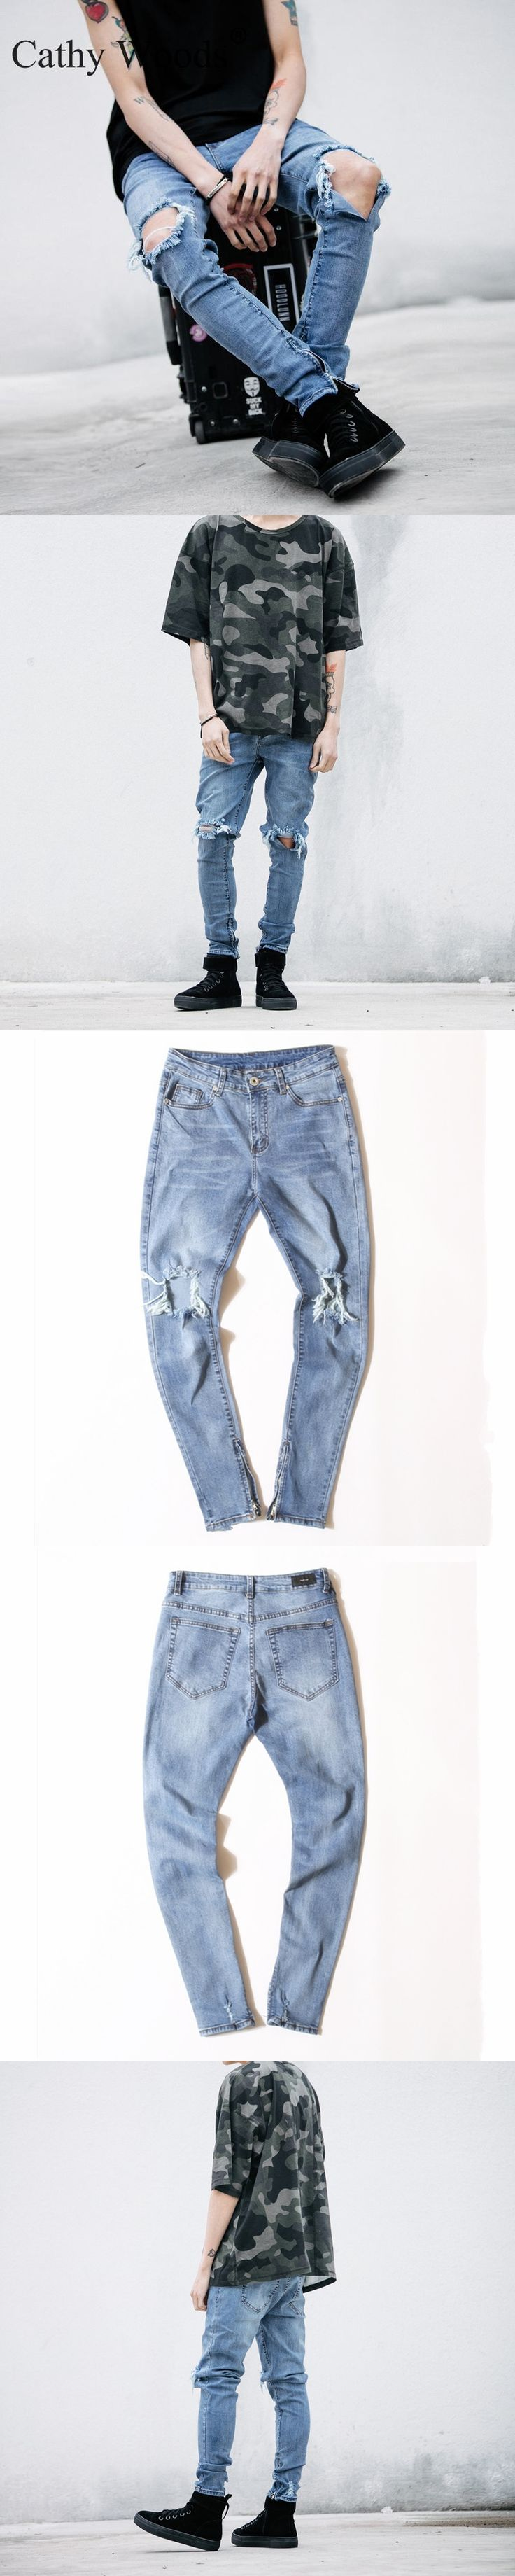 2016 Men's  Ripped jeans With Zipper Skinny Cool Slim Fit Mens   West Jeans Urban Jeans Pants For Men